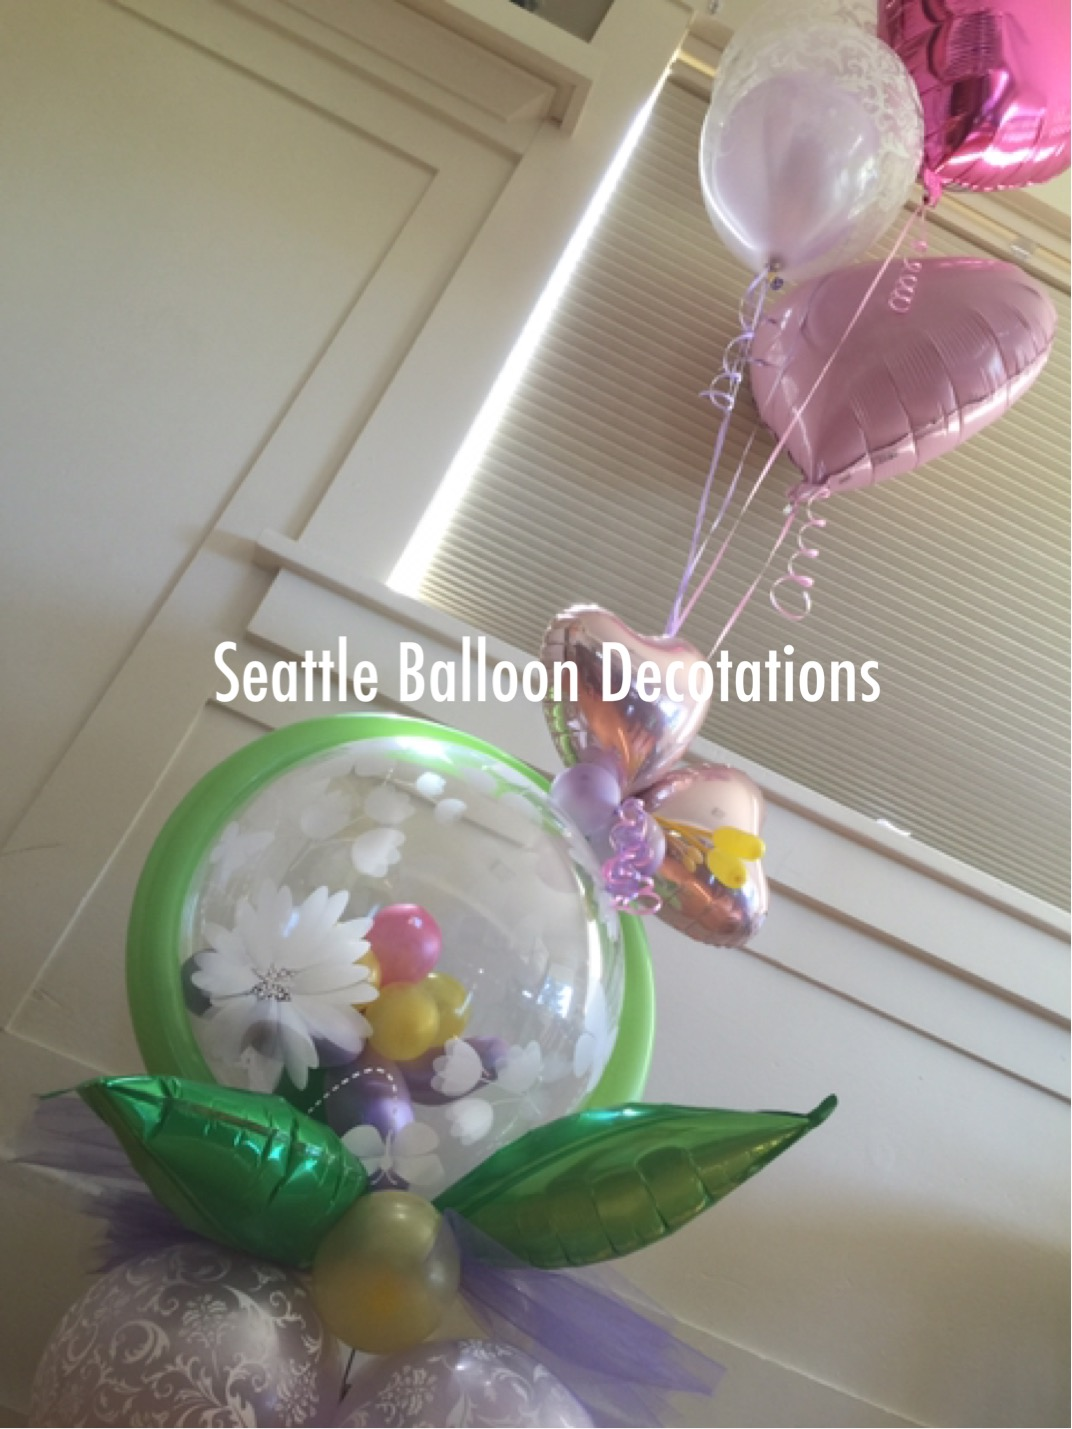 Mothers Day Bouquet Seattle Balloon Decorations